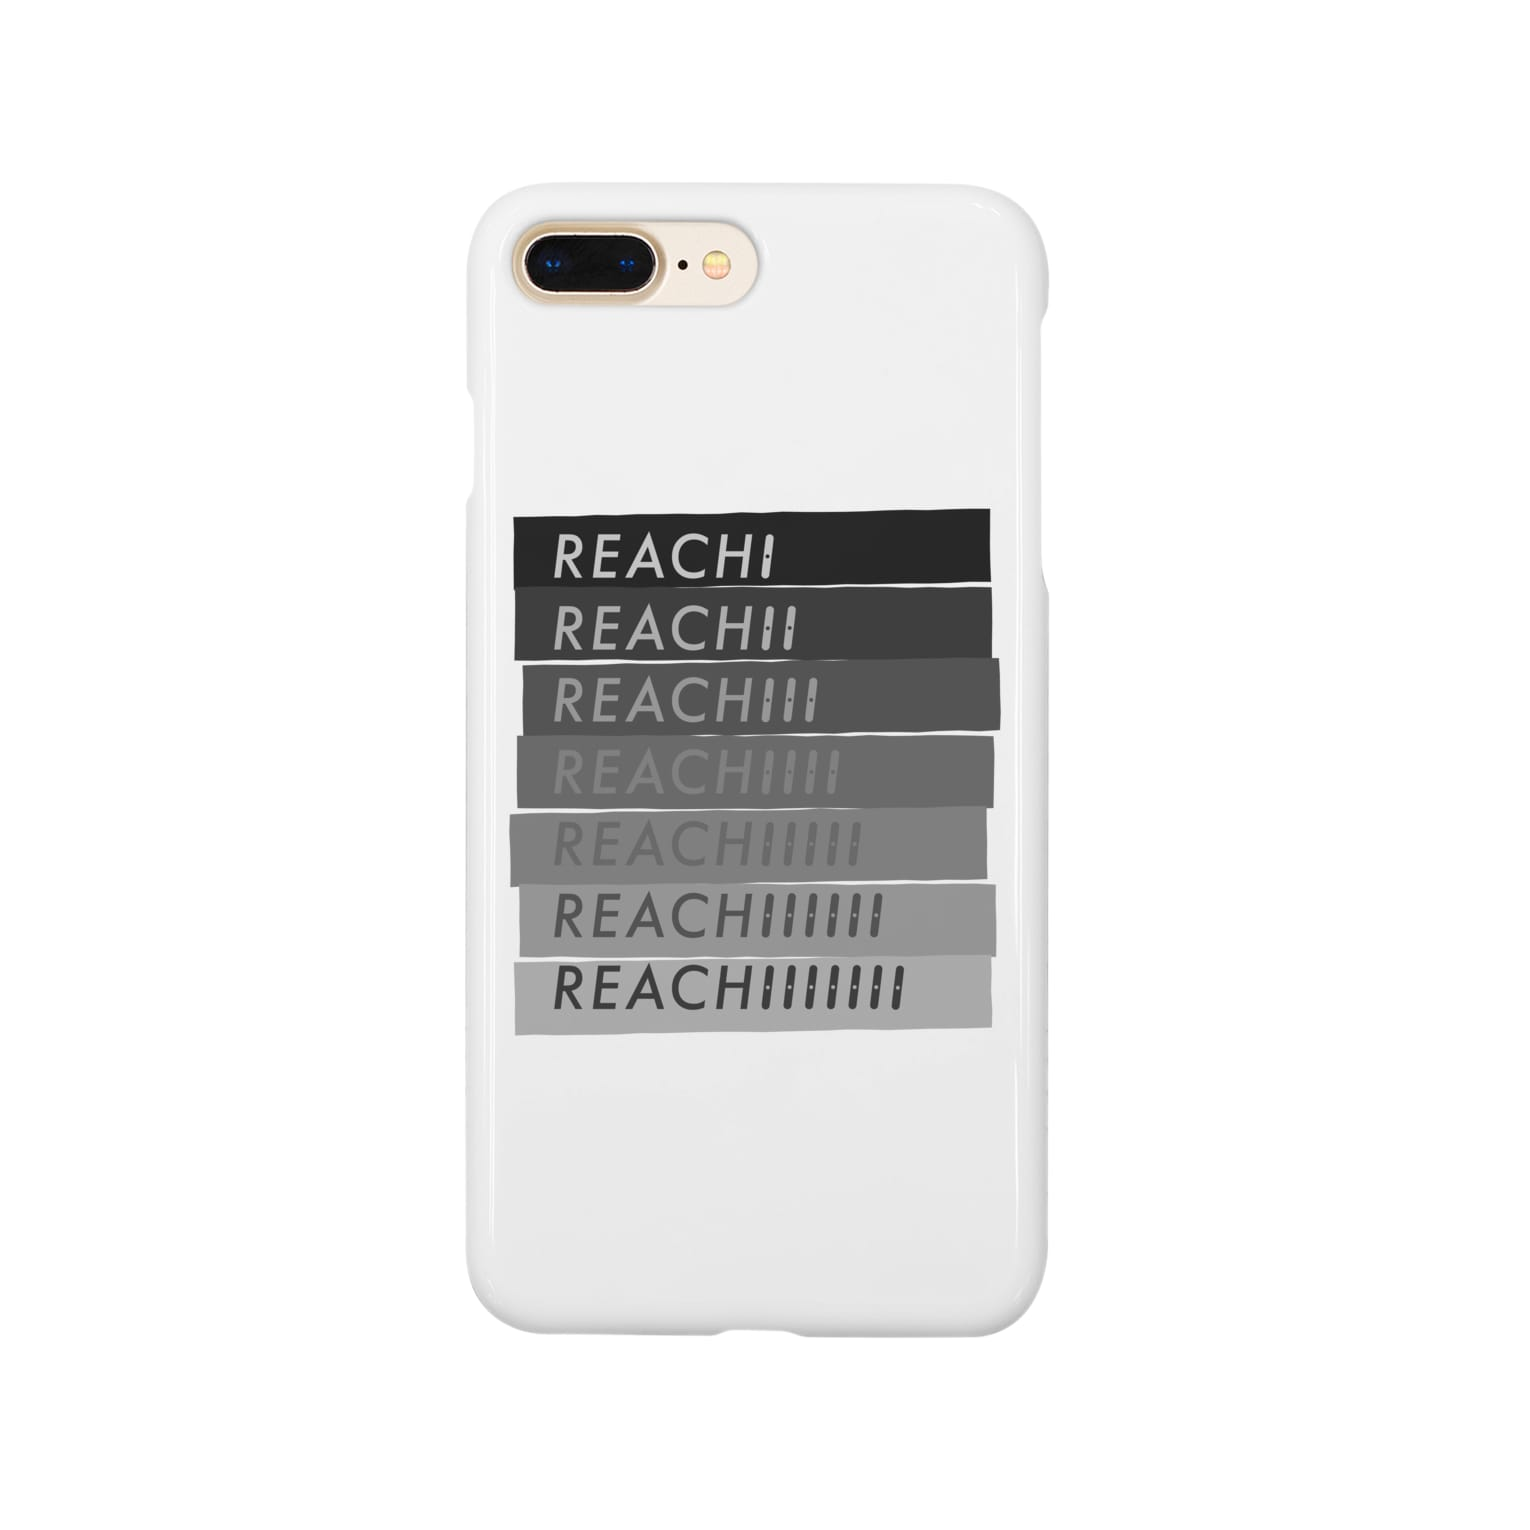 wlmのREACH7 Smartphone cases